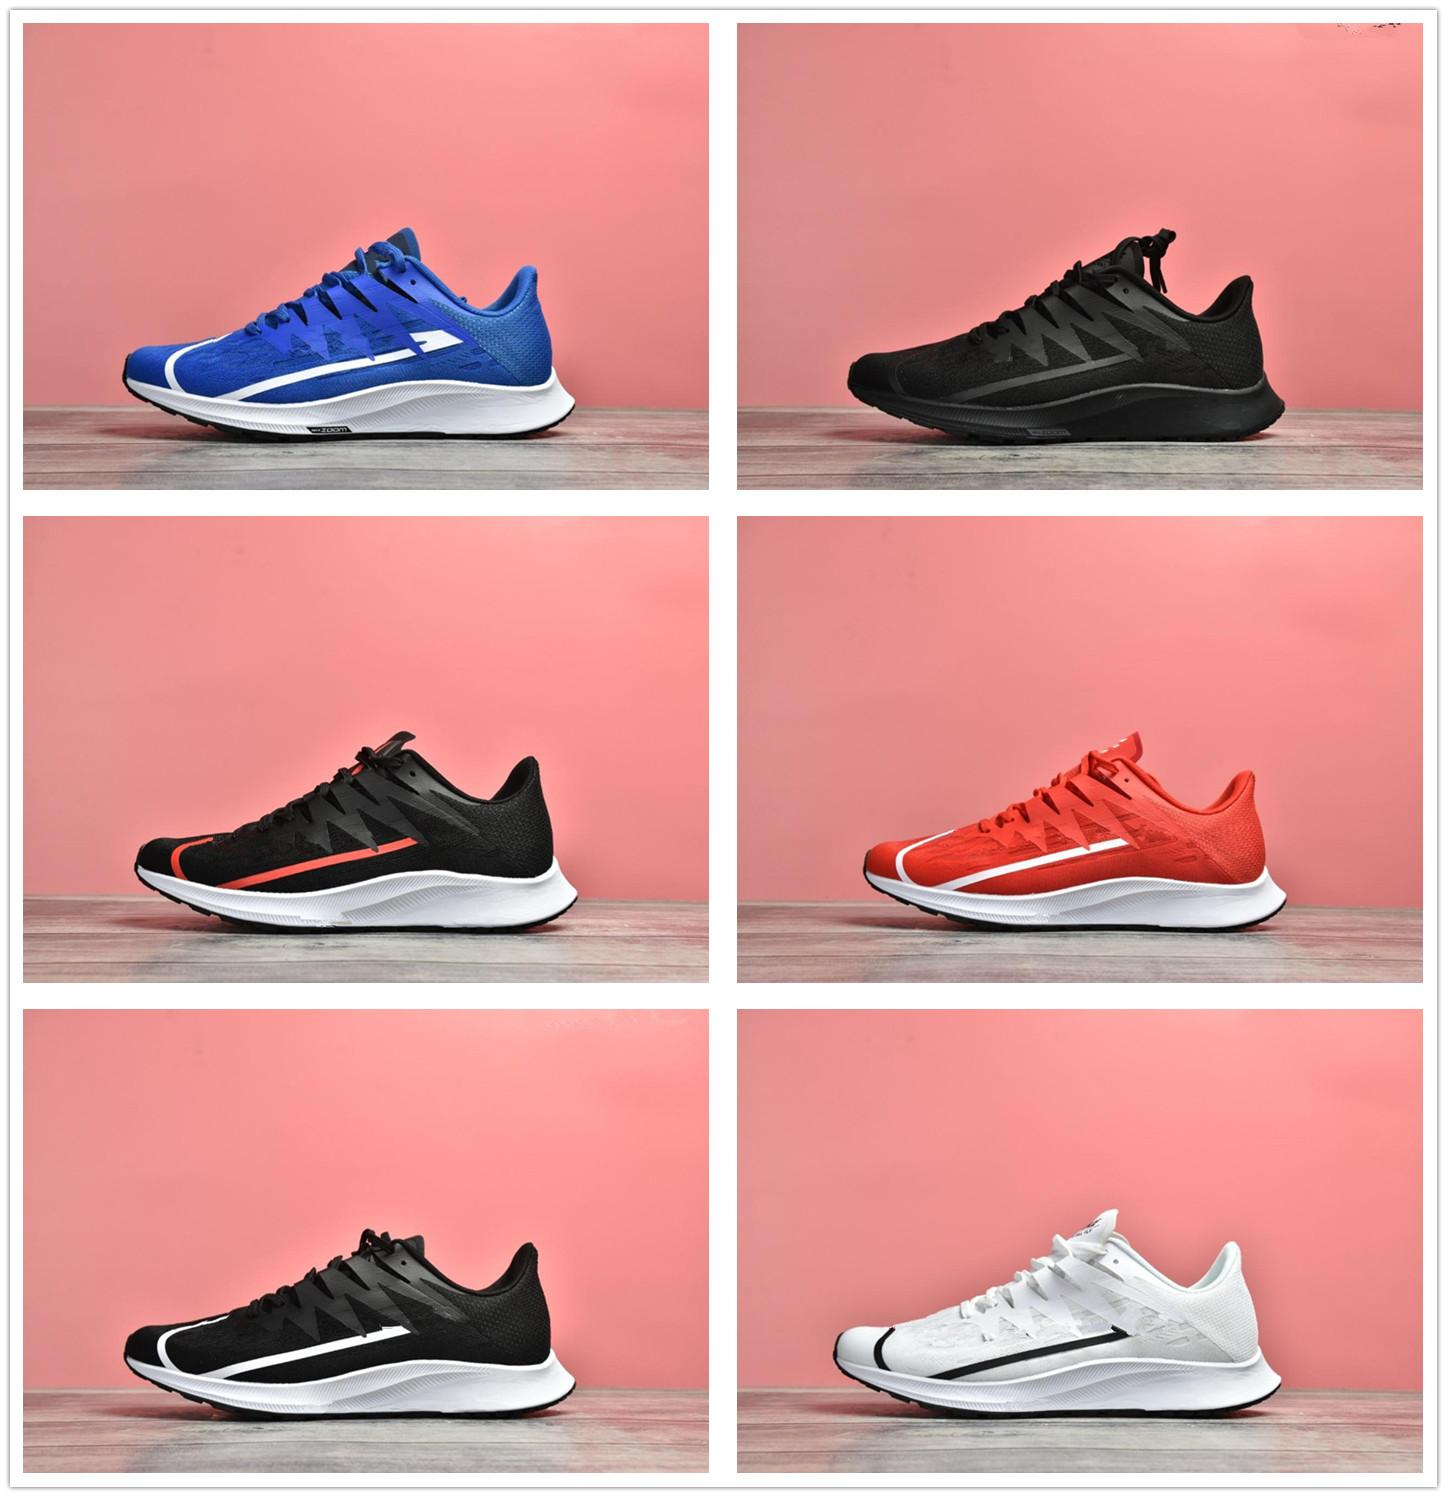 2019 new top Zoom Rival Fly shoe Zoom Fly SP Vaporfly 4% Odyssey React 2 size us7-us11 with box